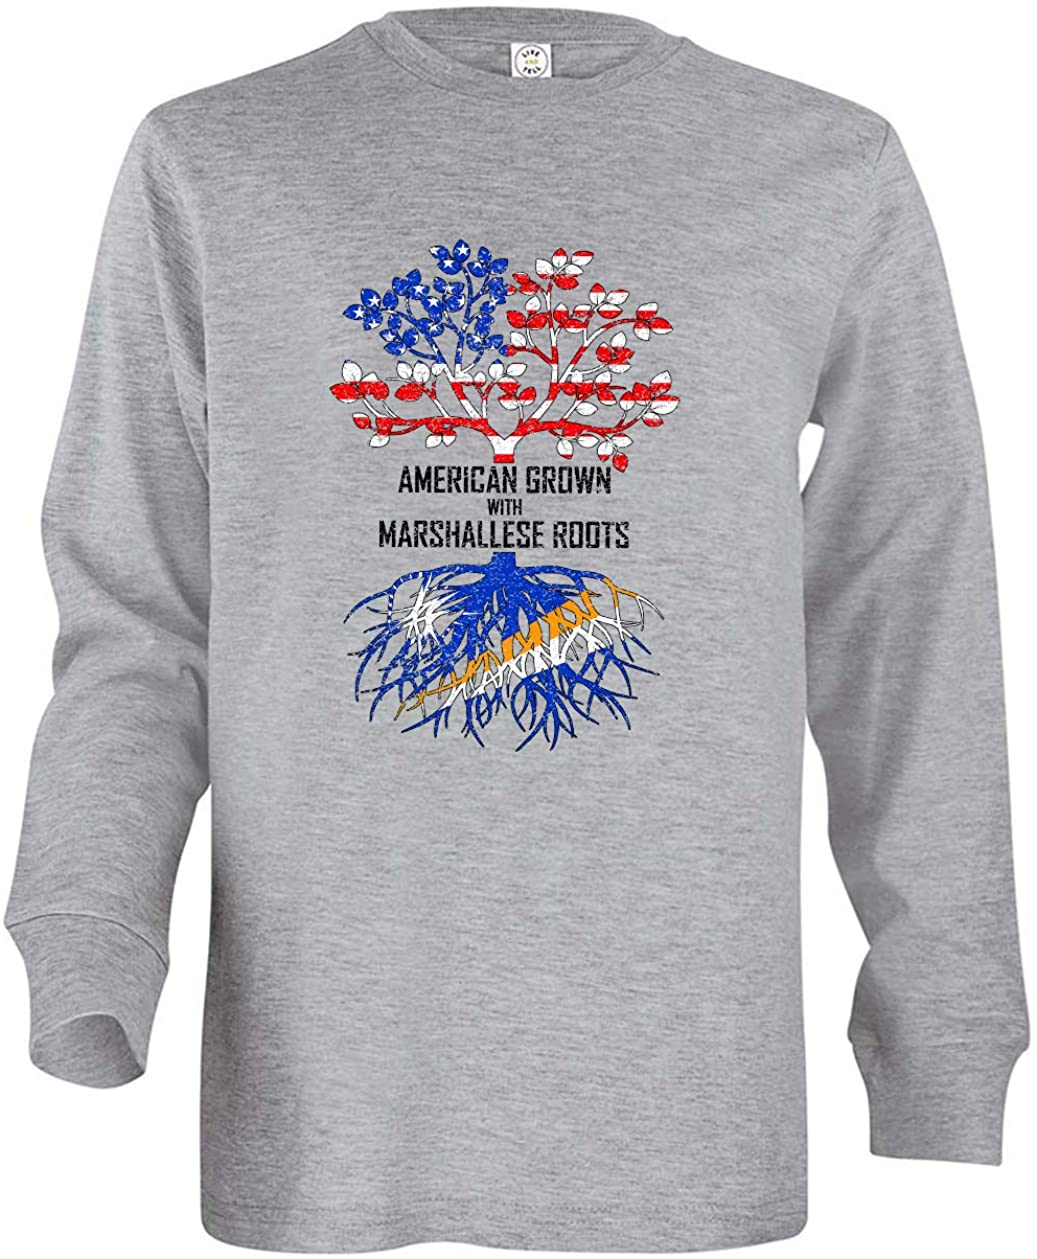 Tenacitee Boy's Youth American Grown with Marshallese Roots Long Sleeve